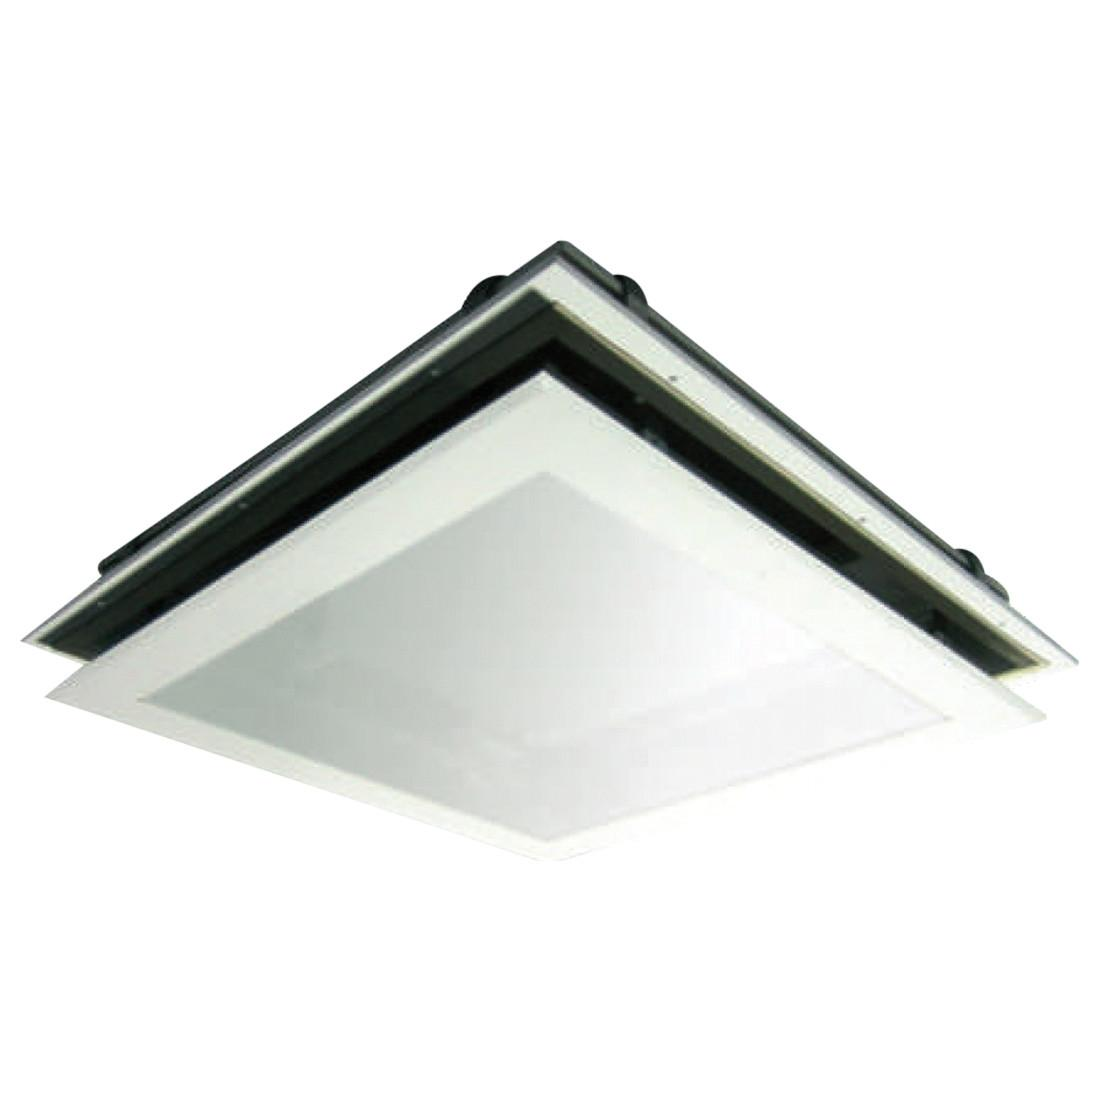 Room Led Clean Light Fixtures